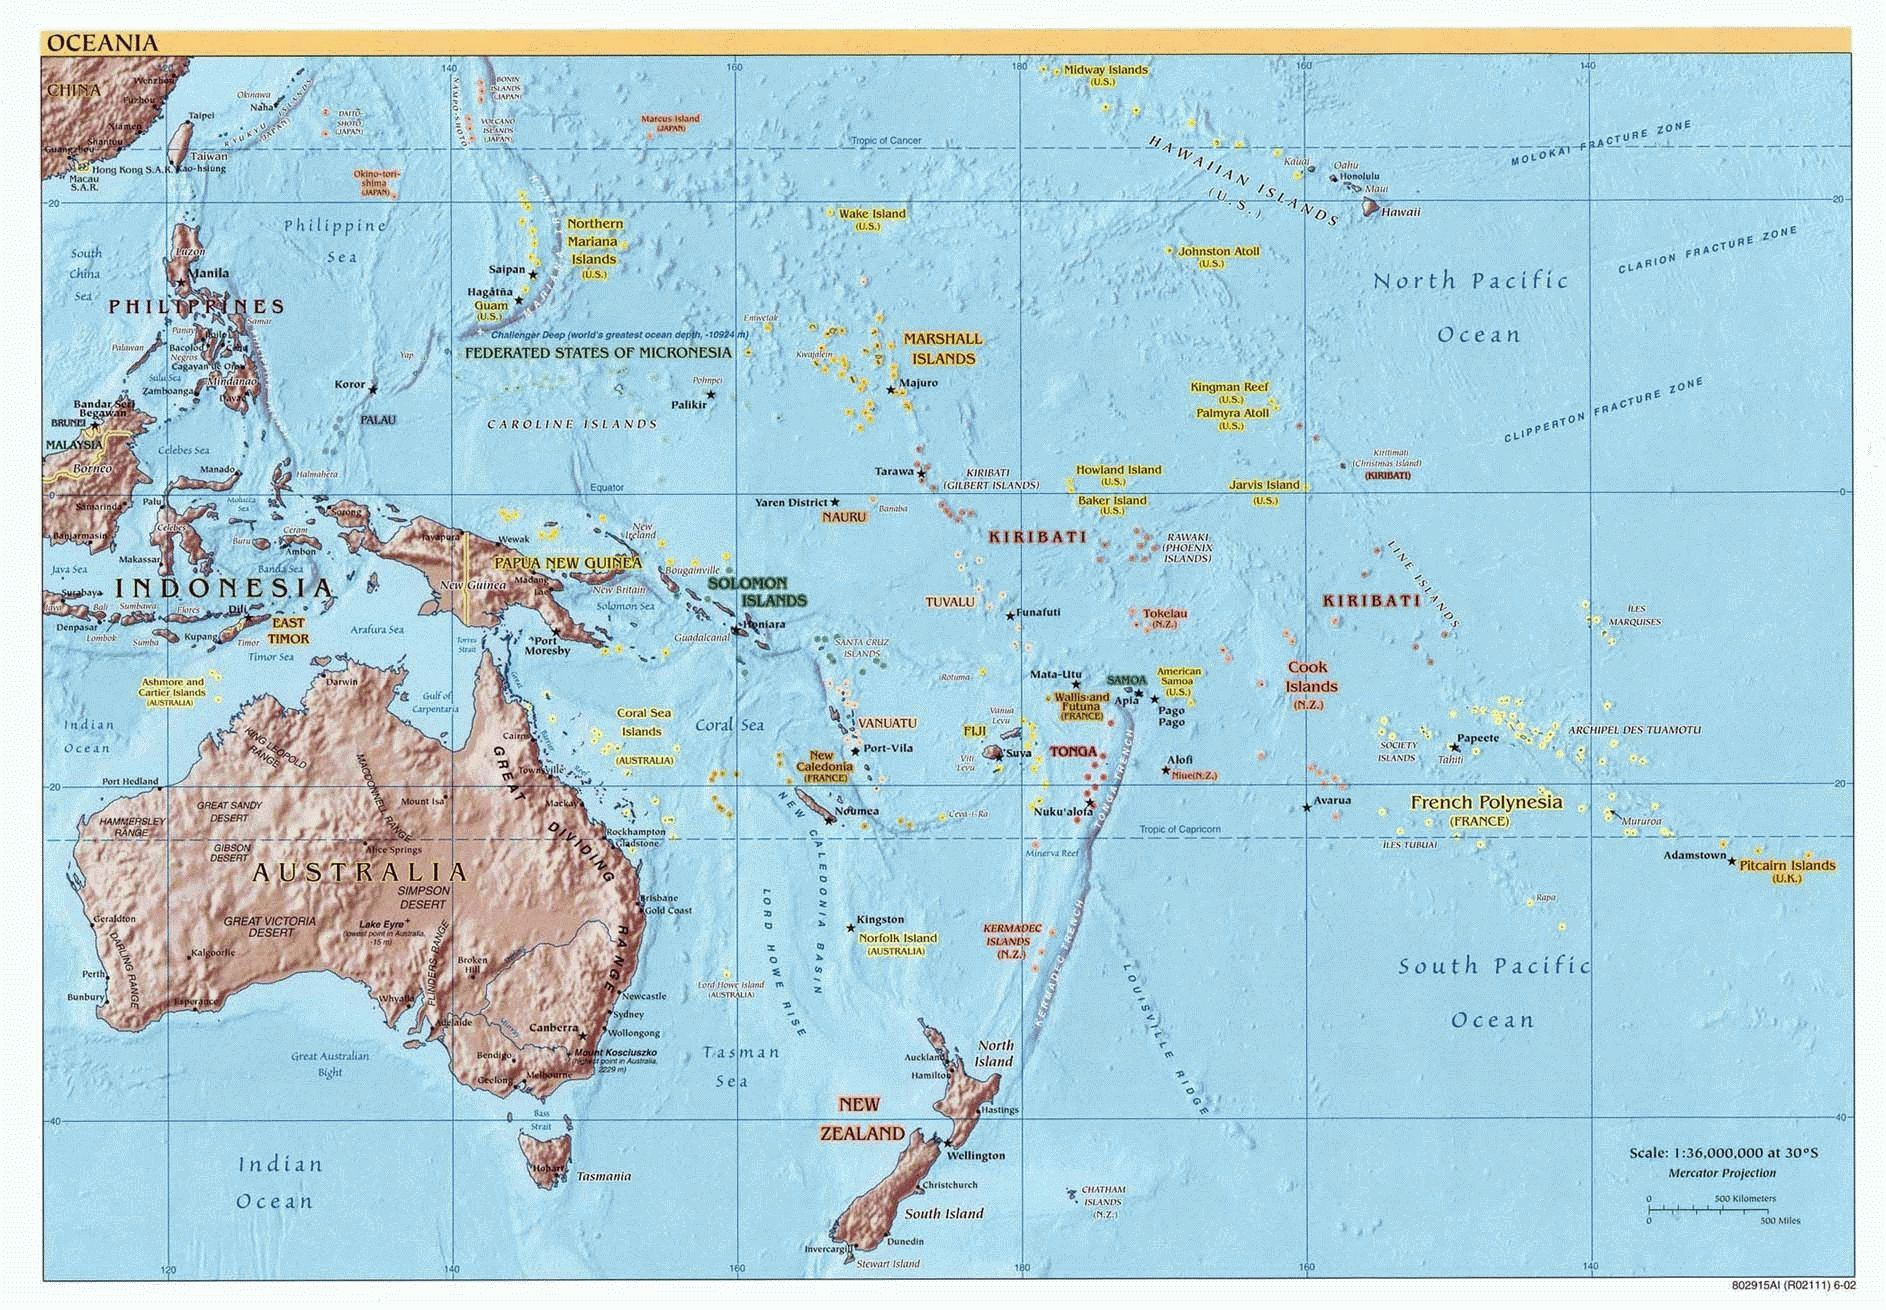 Map of Oceania (Reference), 2002. Courtesy of, The World Factbook (http://cia.gov/cia/publications/factbook) or CIA Maps and Publications Released to the Public (http://www.cia.gov/cia/publications/mapspub), Central Intelligence Agency (CIA), Government of the United States of America (USA); and the Perry-Casta�eda Map Collection (http://www.lib.utexas.edu/maps), Perry-Casta�eda Library, The General Libraries, University of Texas at Austin, Austin, Texas, USA.